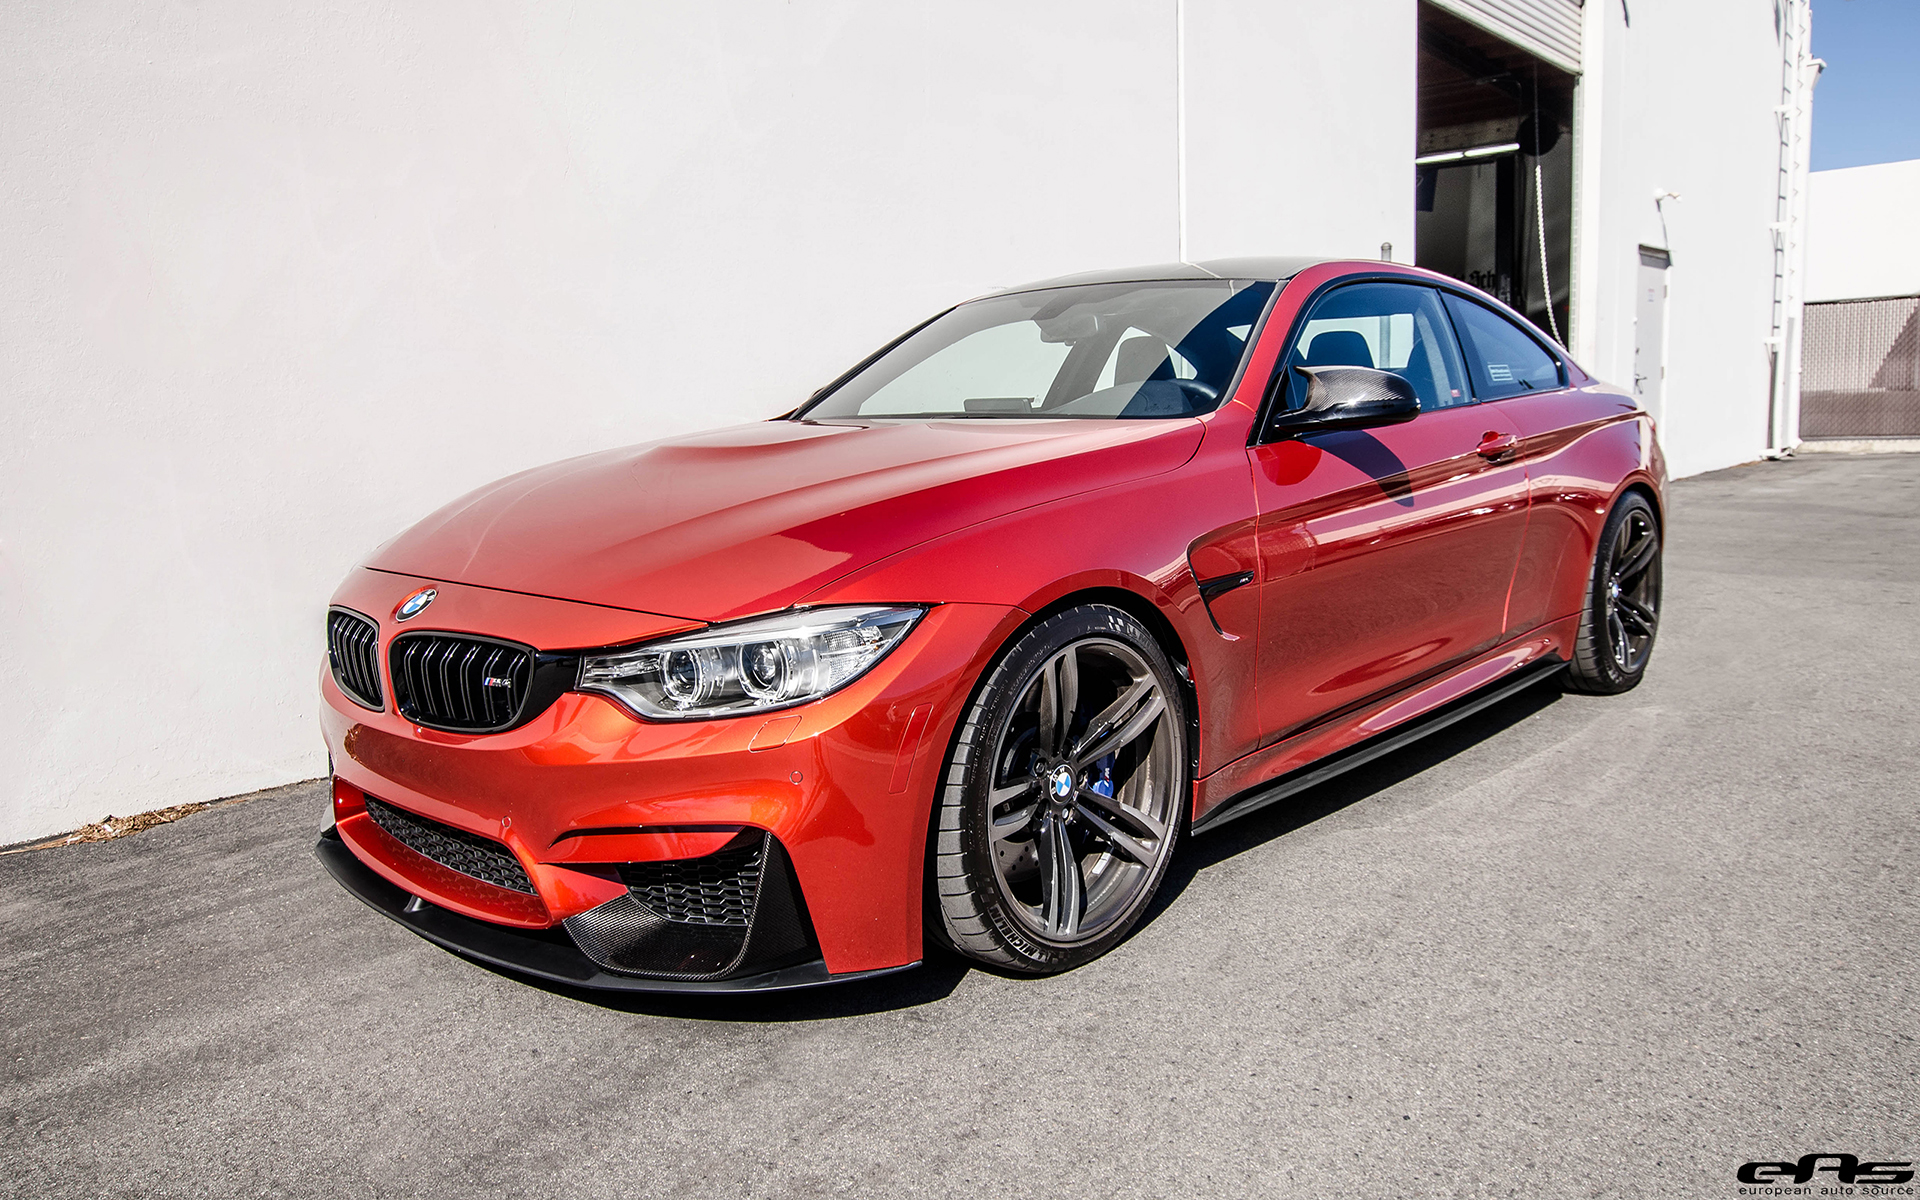 Sakhir Orange BMW M4 With M Performance Goodies 2